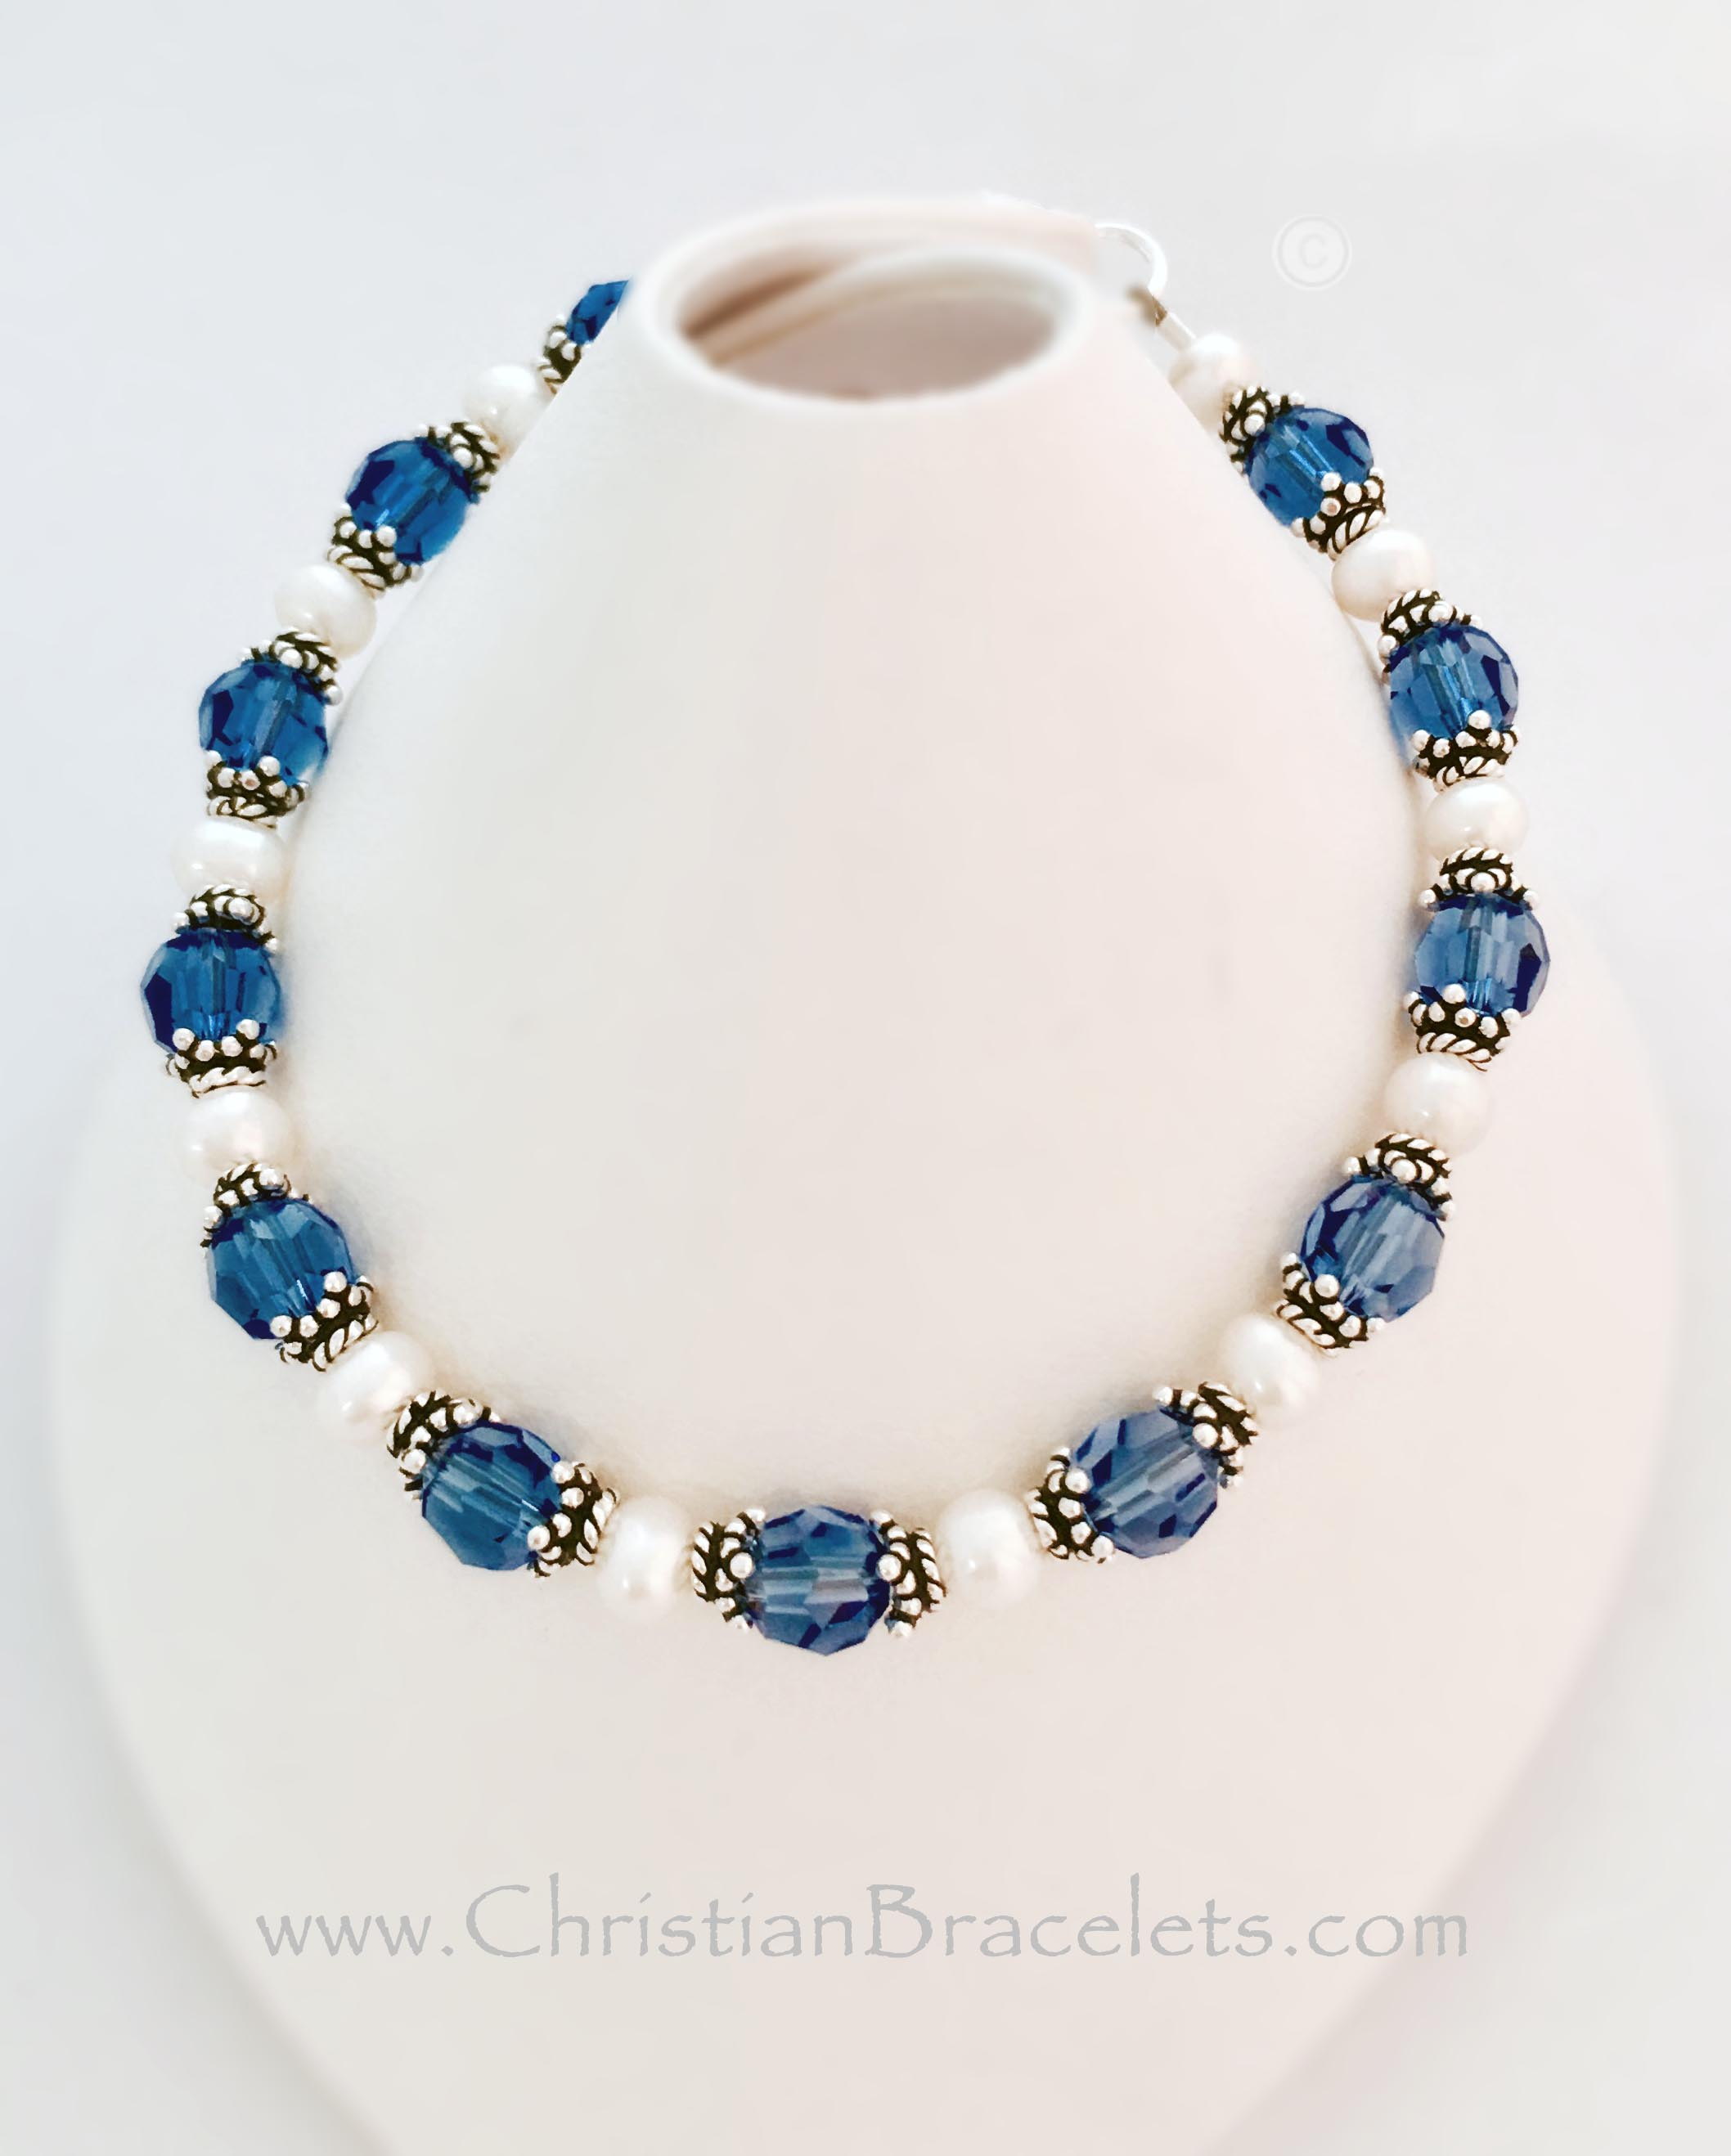 This Blue Ribbon Bracelet is shown with dark blue crystals which can signify Colon Cancer. A Ribbon and Crystal dangle charm are included in the price.